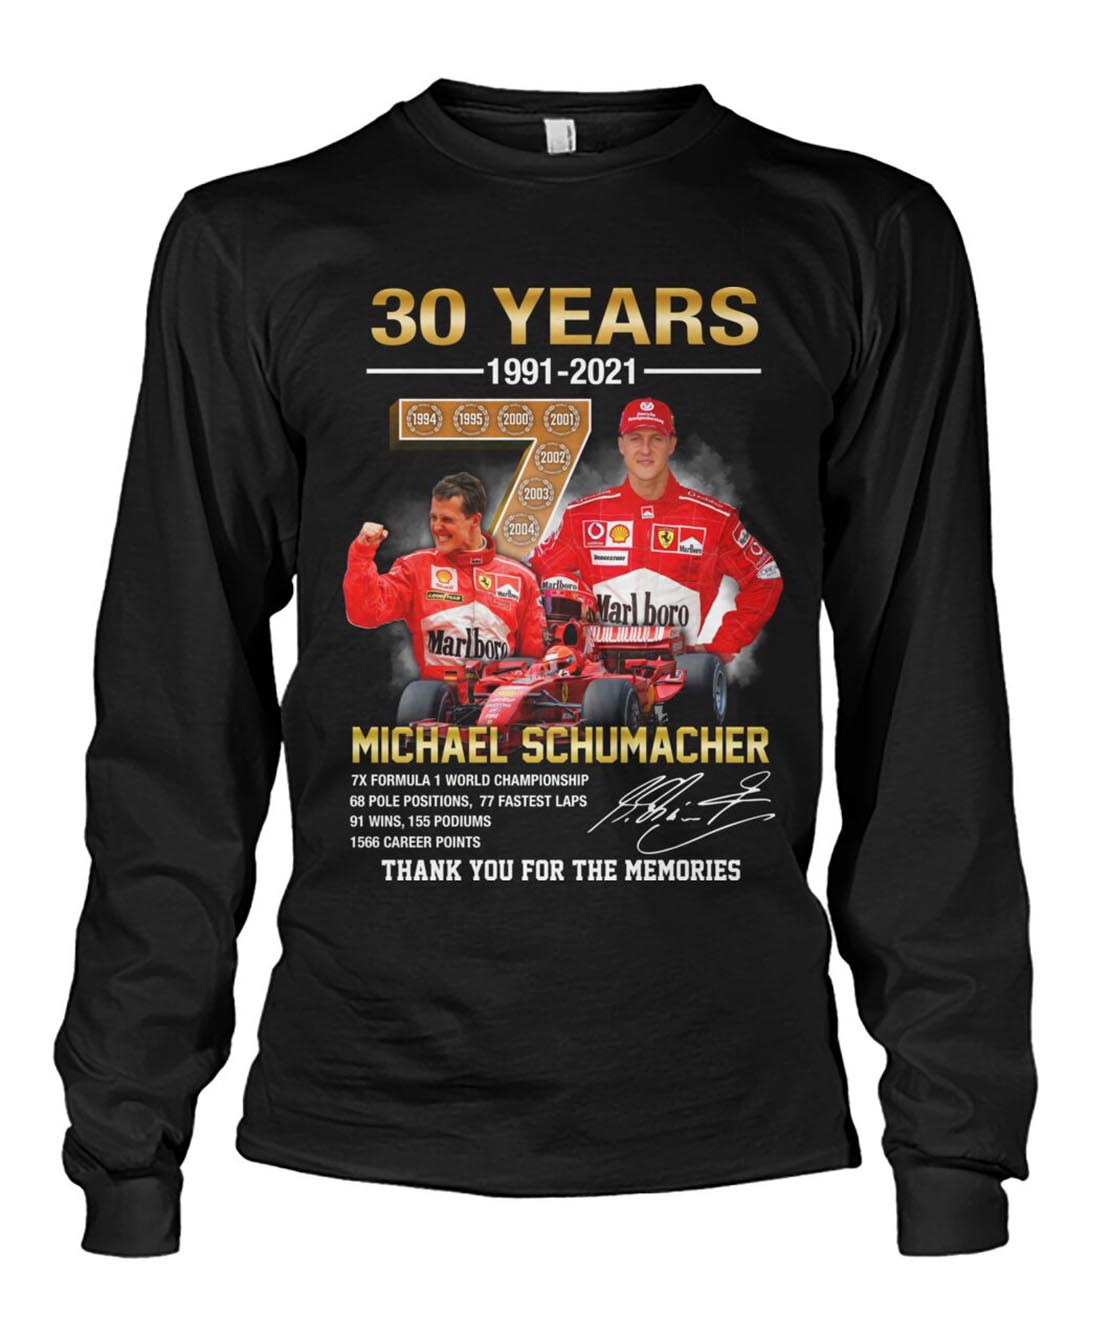 30 years Michael Schumacher thank you for the memories long sleeve tee